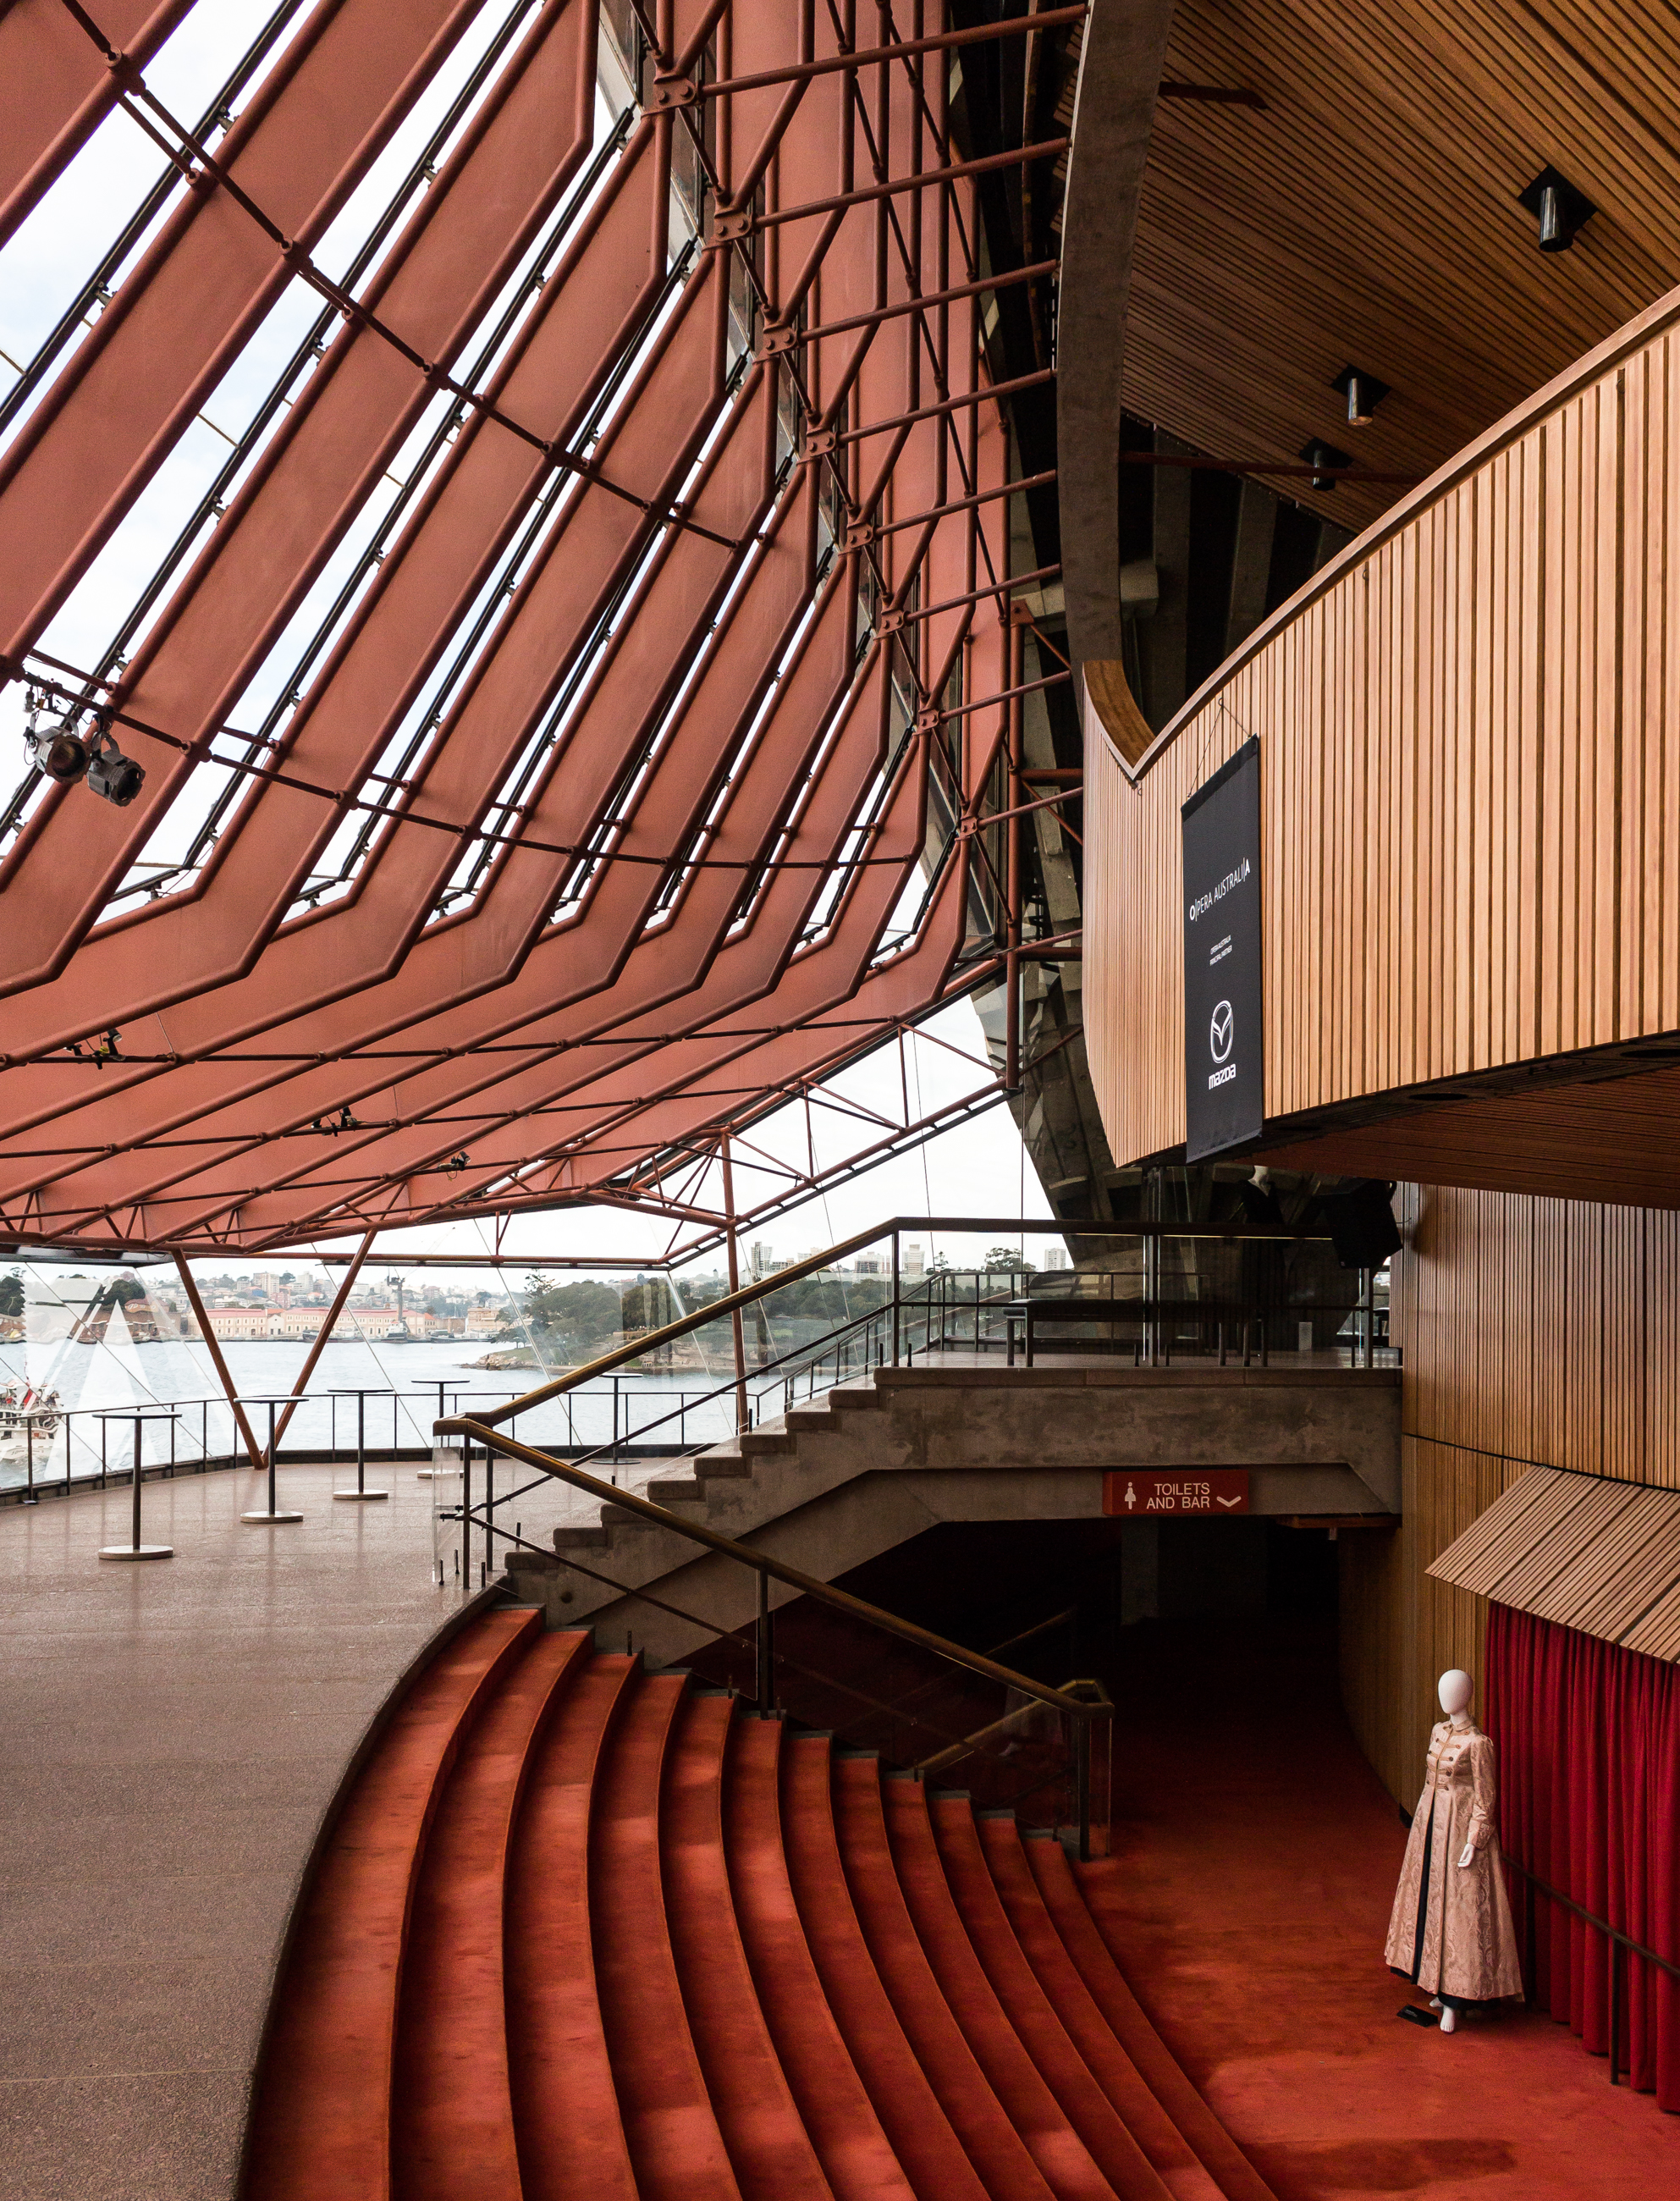 Sydney Opera House - Photography by Mike Dugenio (1 of 9).jpg